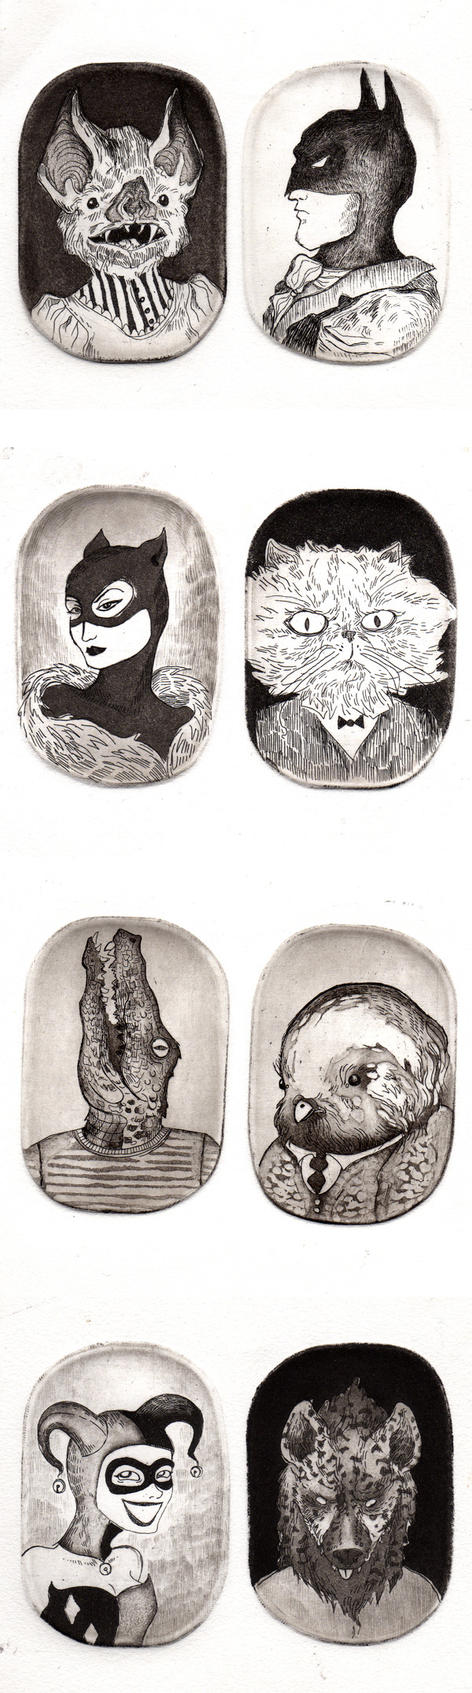 etching little portraits by Brathanaelle